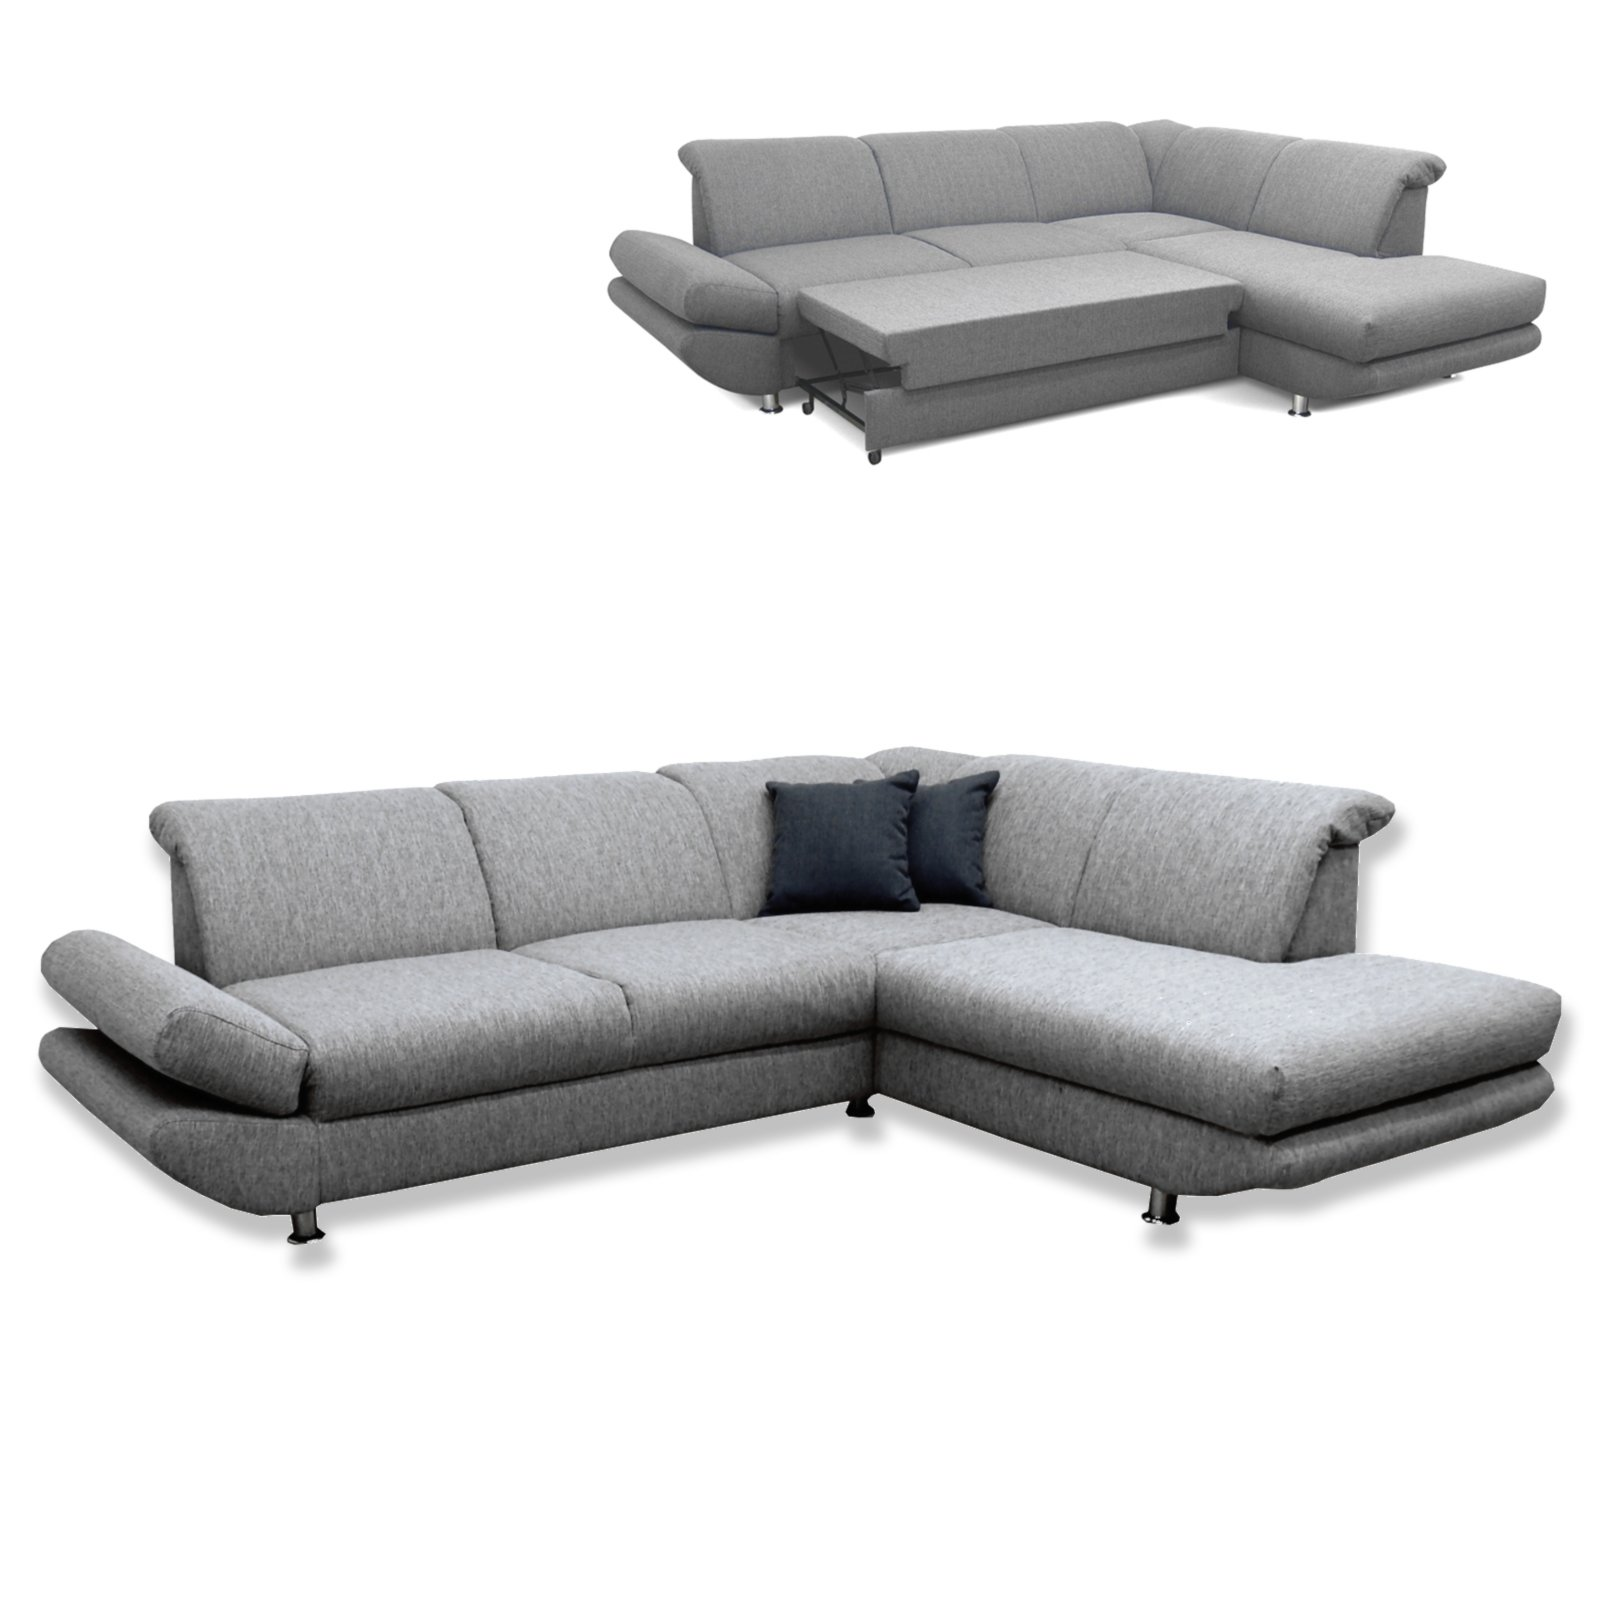 polsterecke silber grau liegefunktion ottomane rechts ecksofas l form sofas couches. Black Bedroom Furniture Sets. Home Design Ideas